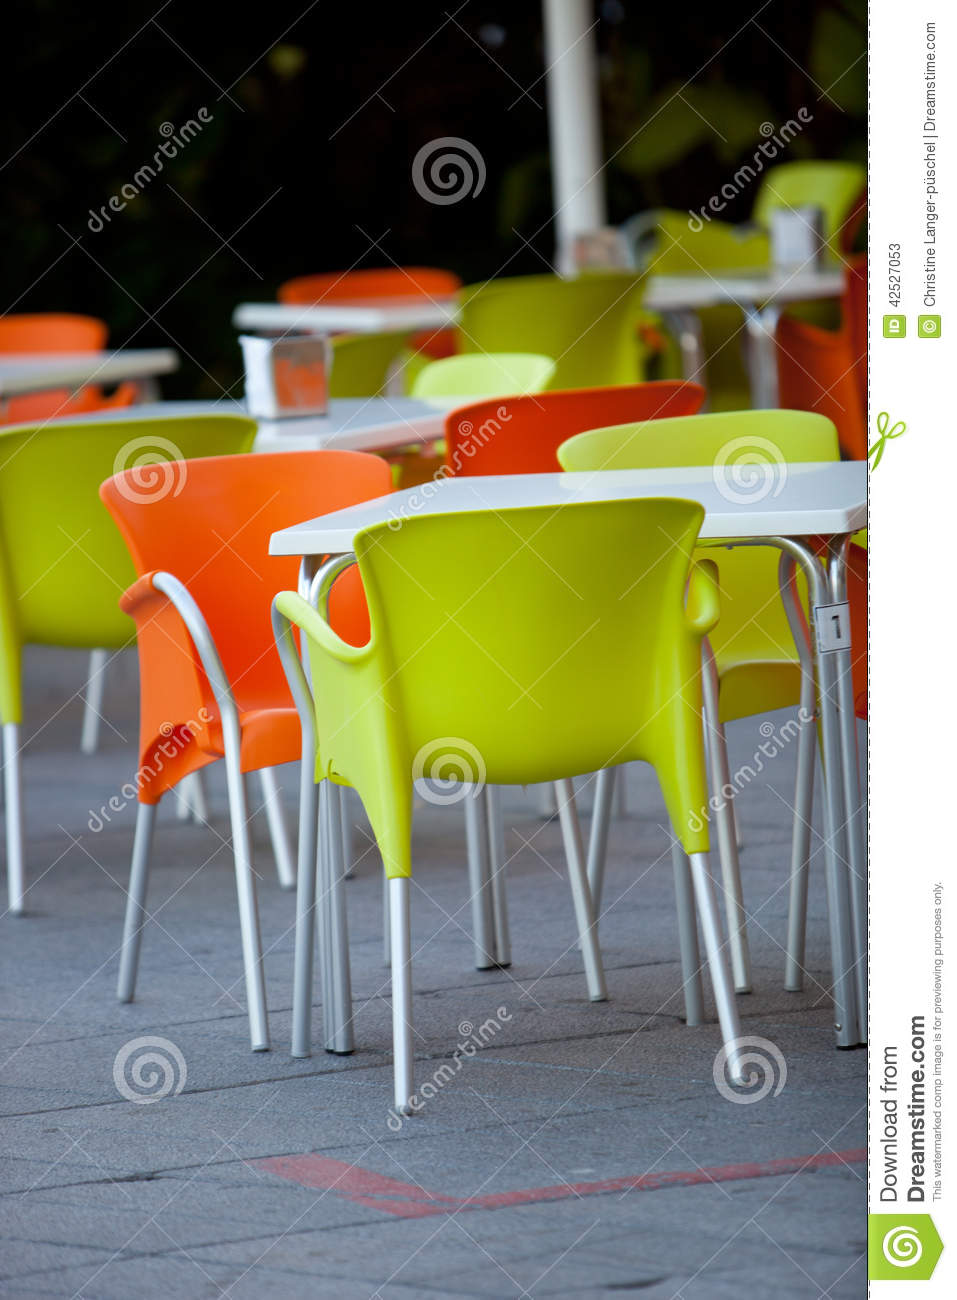 white plastic chairs gliding rocker chair outdoor furniture of a restaurant or cafeteria stock image - image: 42527053